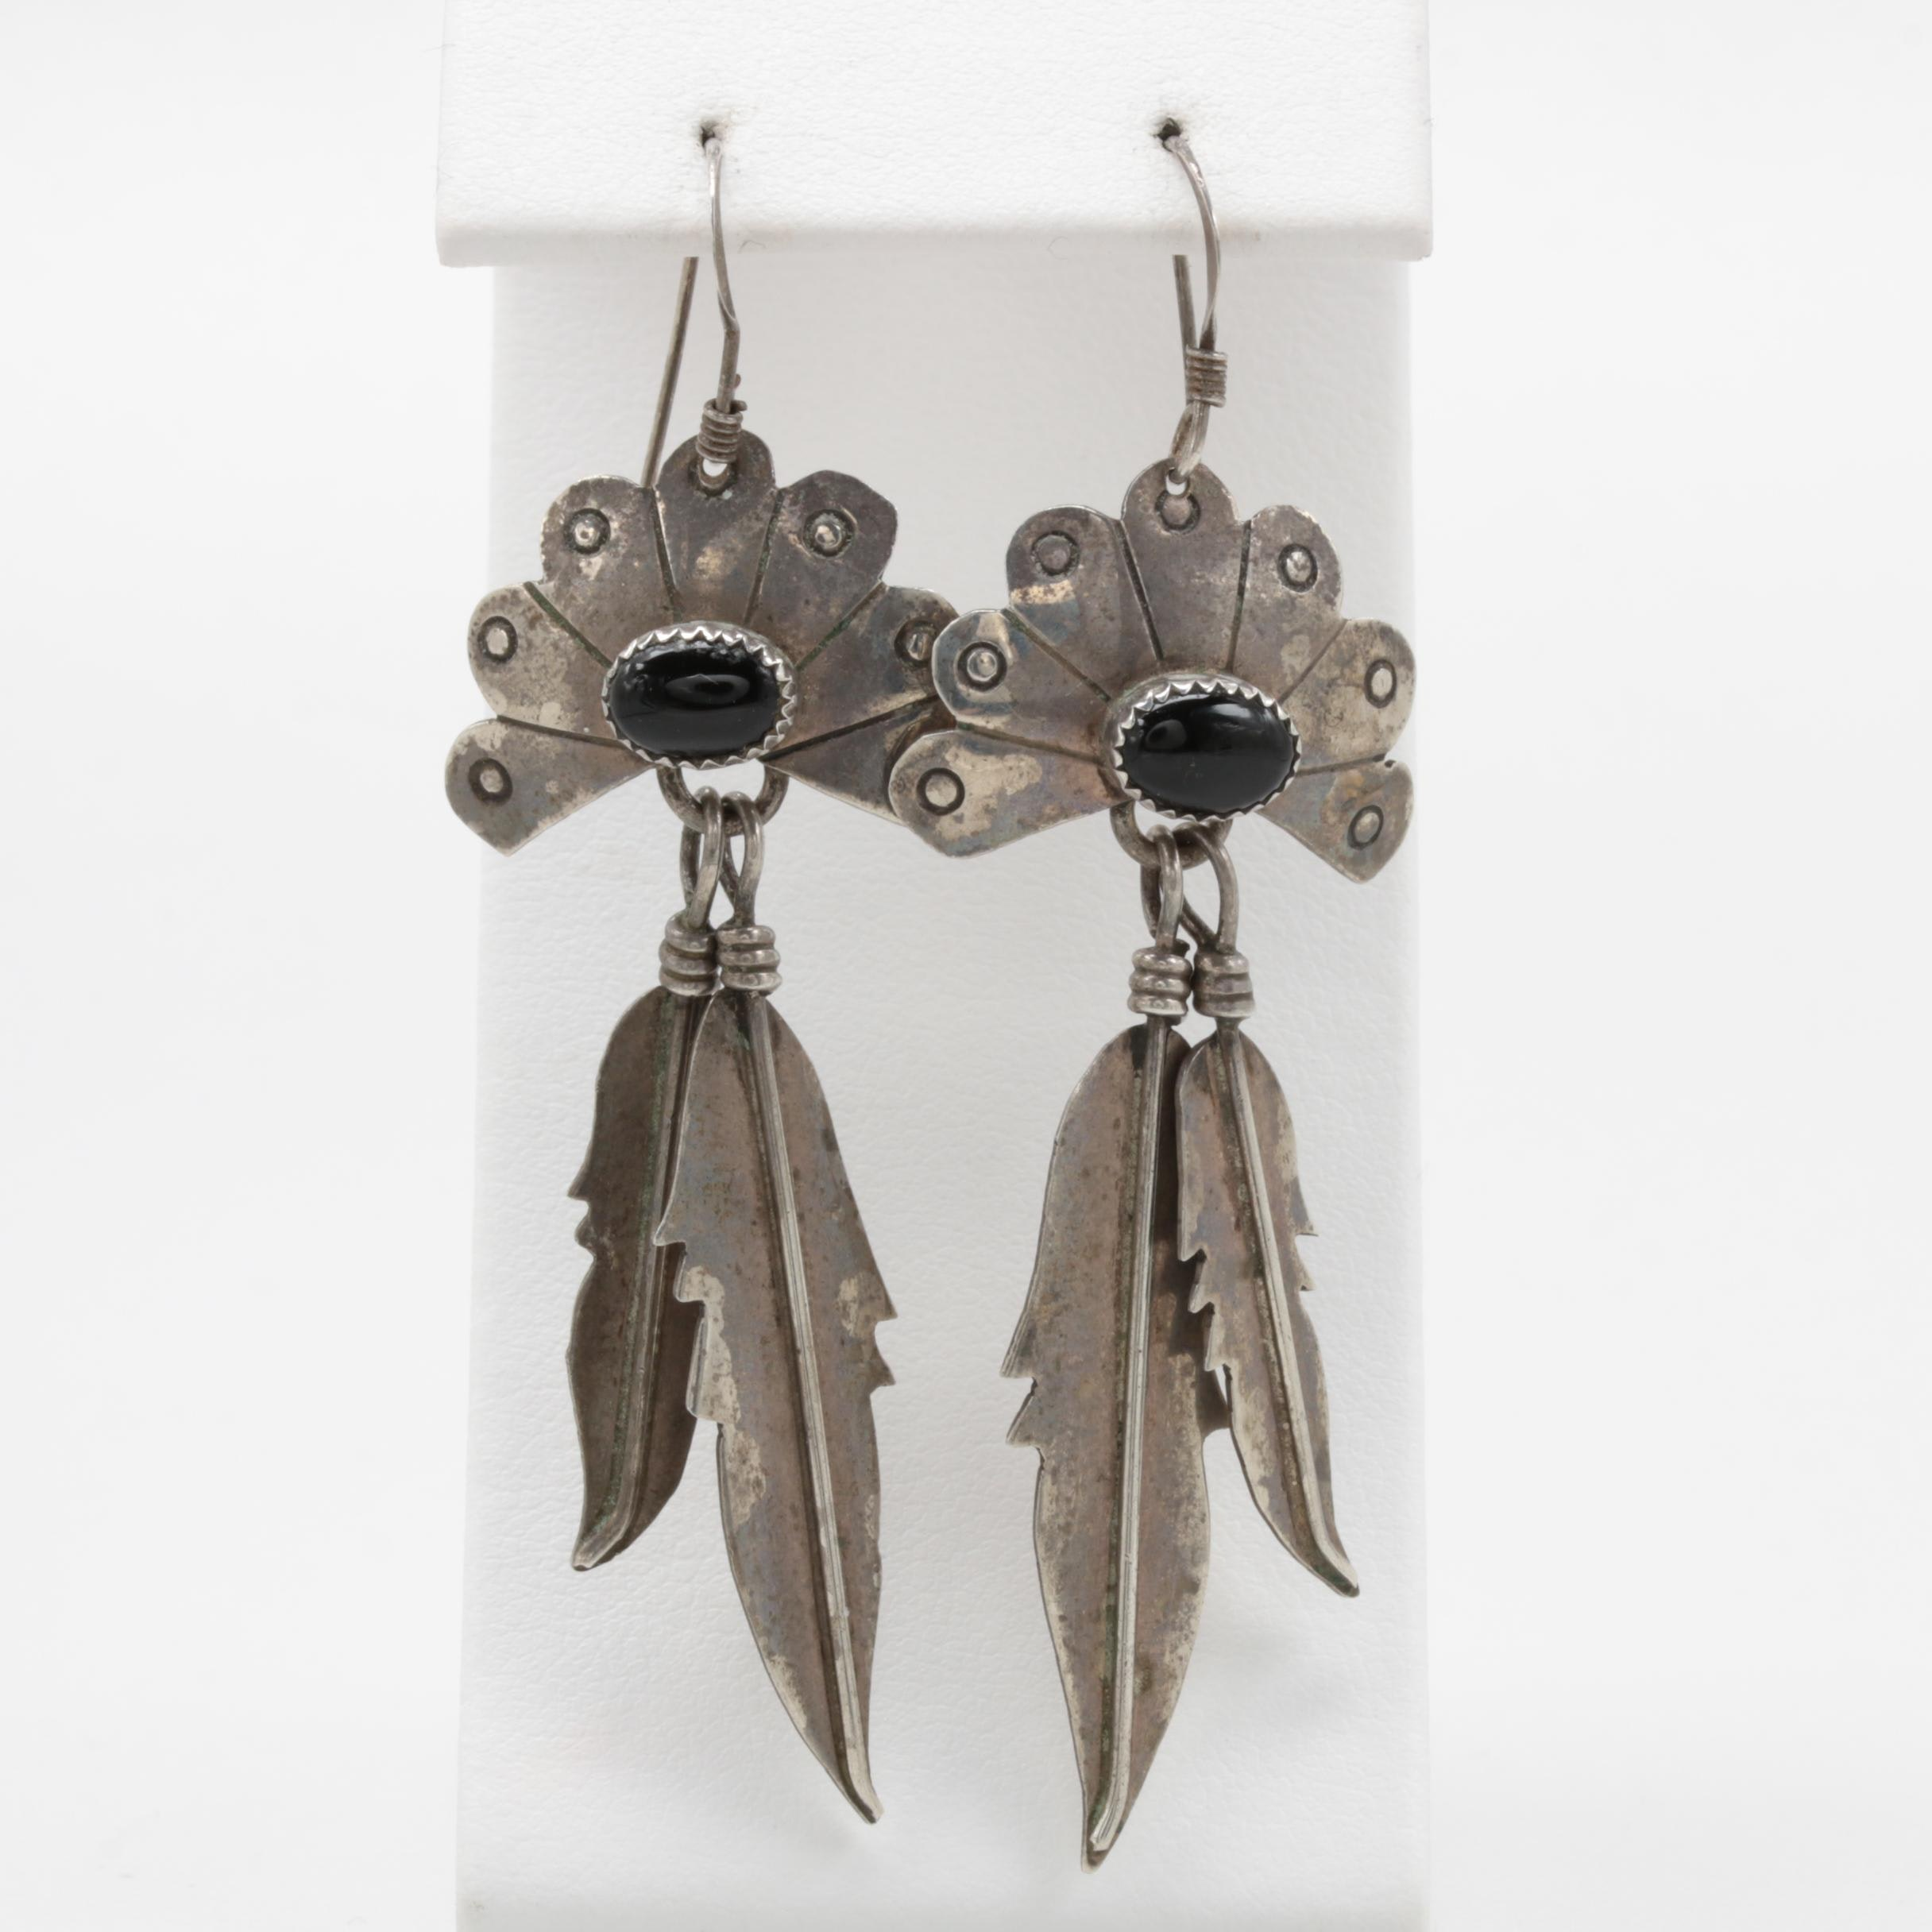 E. Yazzie Navajo Diné Sterling Silver Black Onyx Earrings